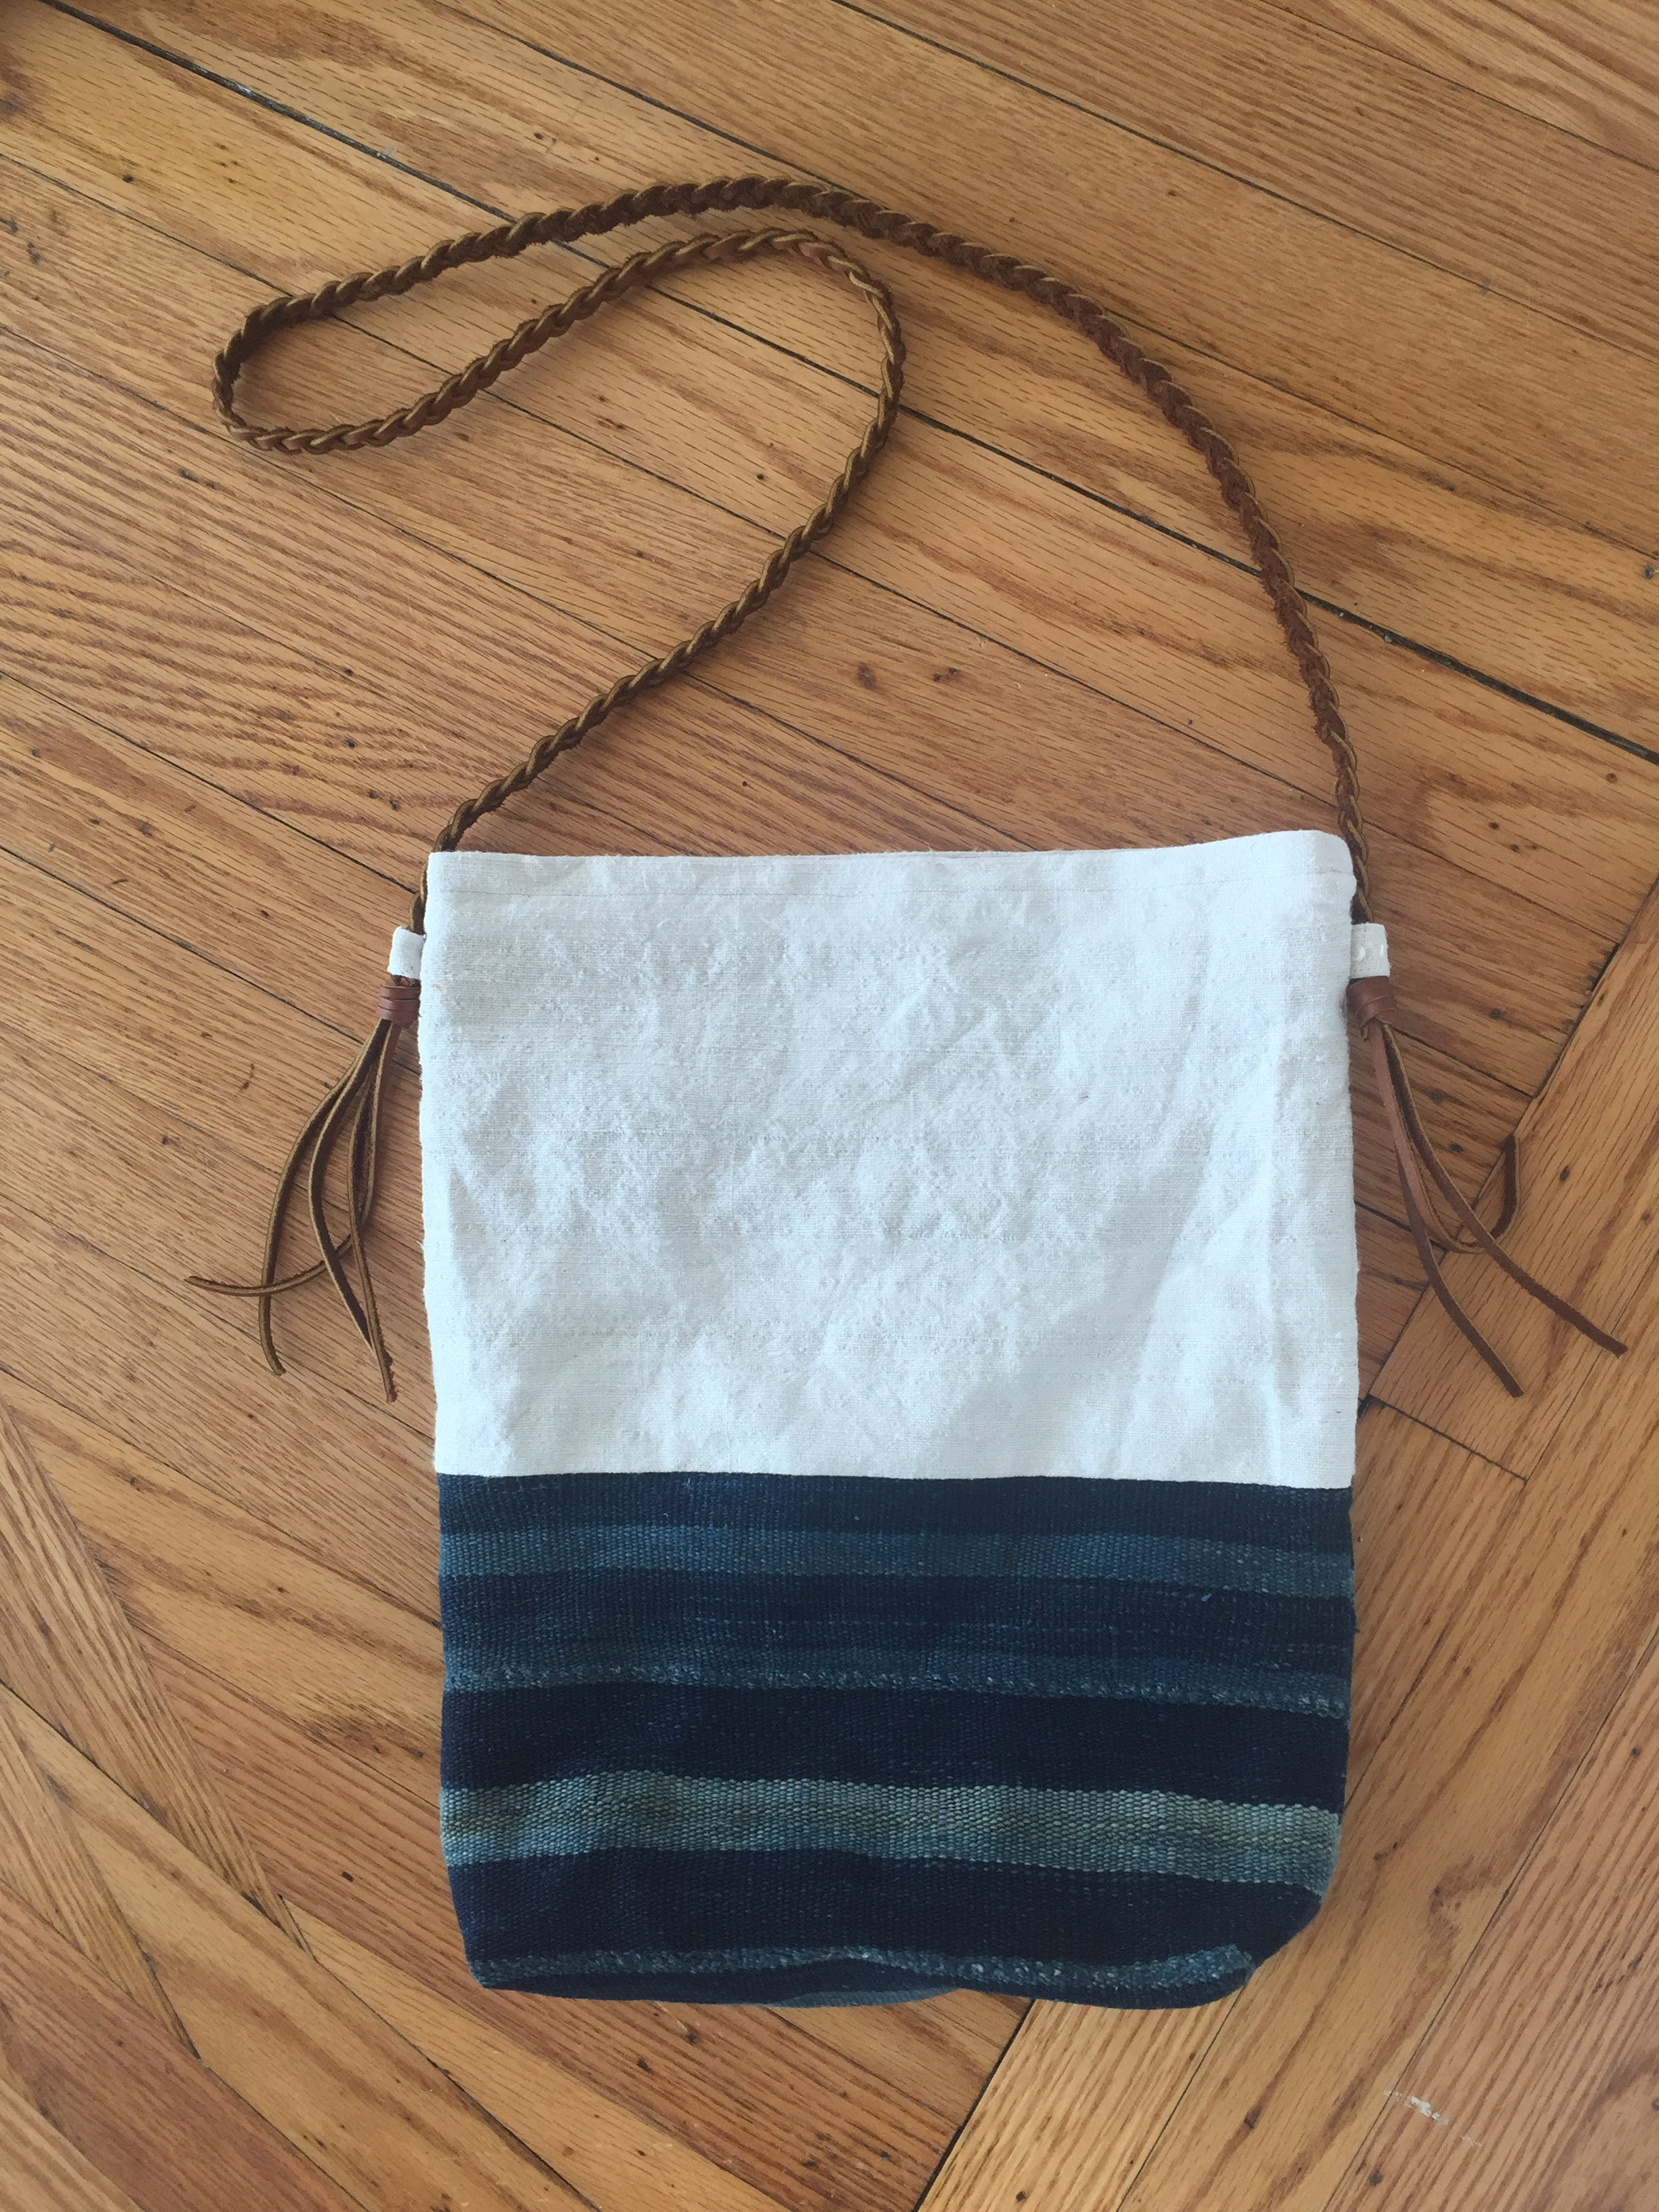 Mud cloth tote with braided strap